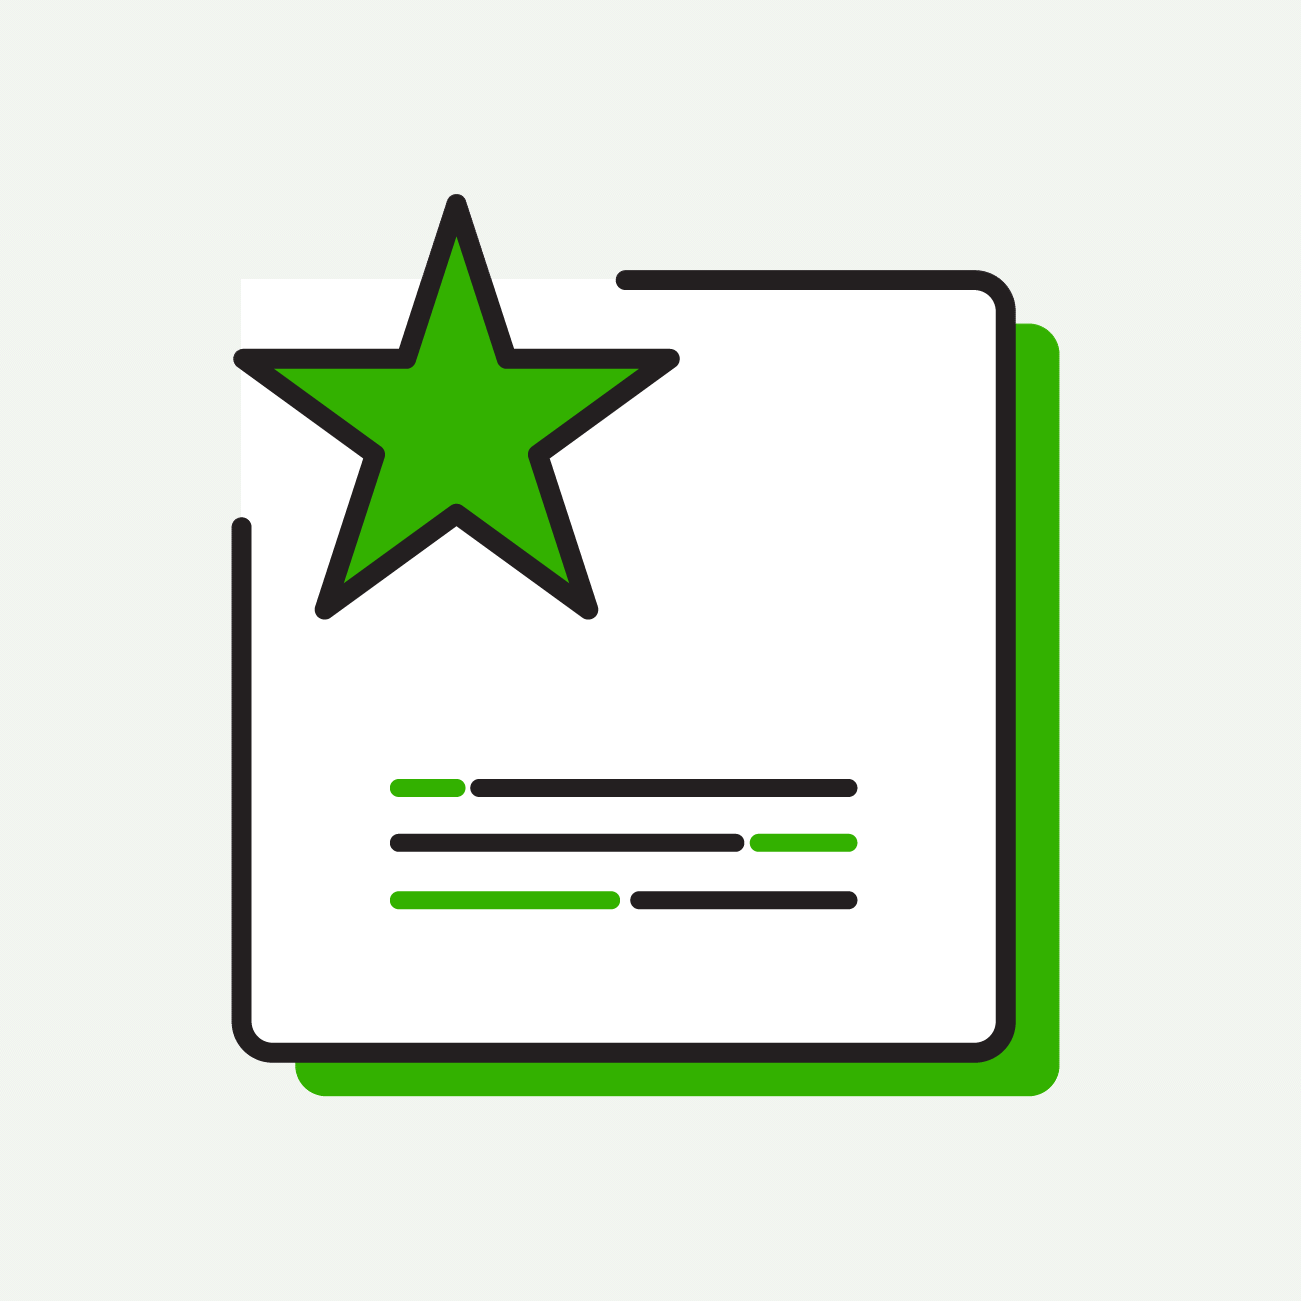 review star icon